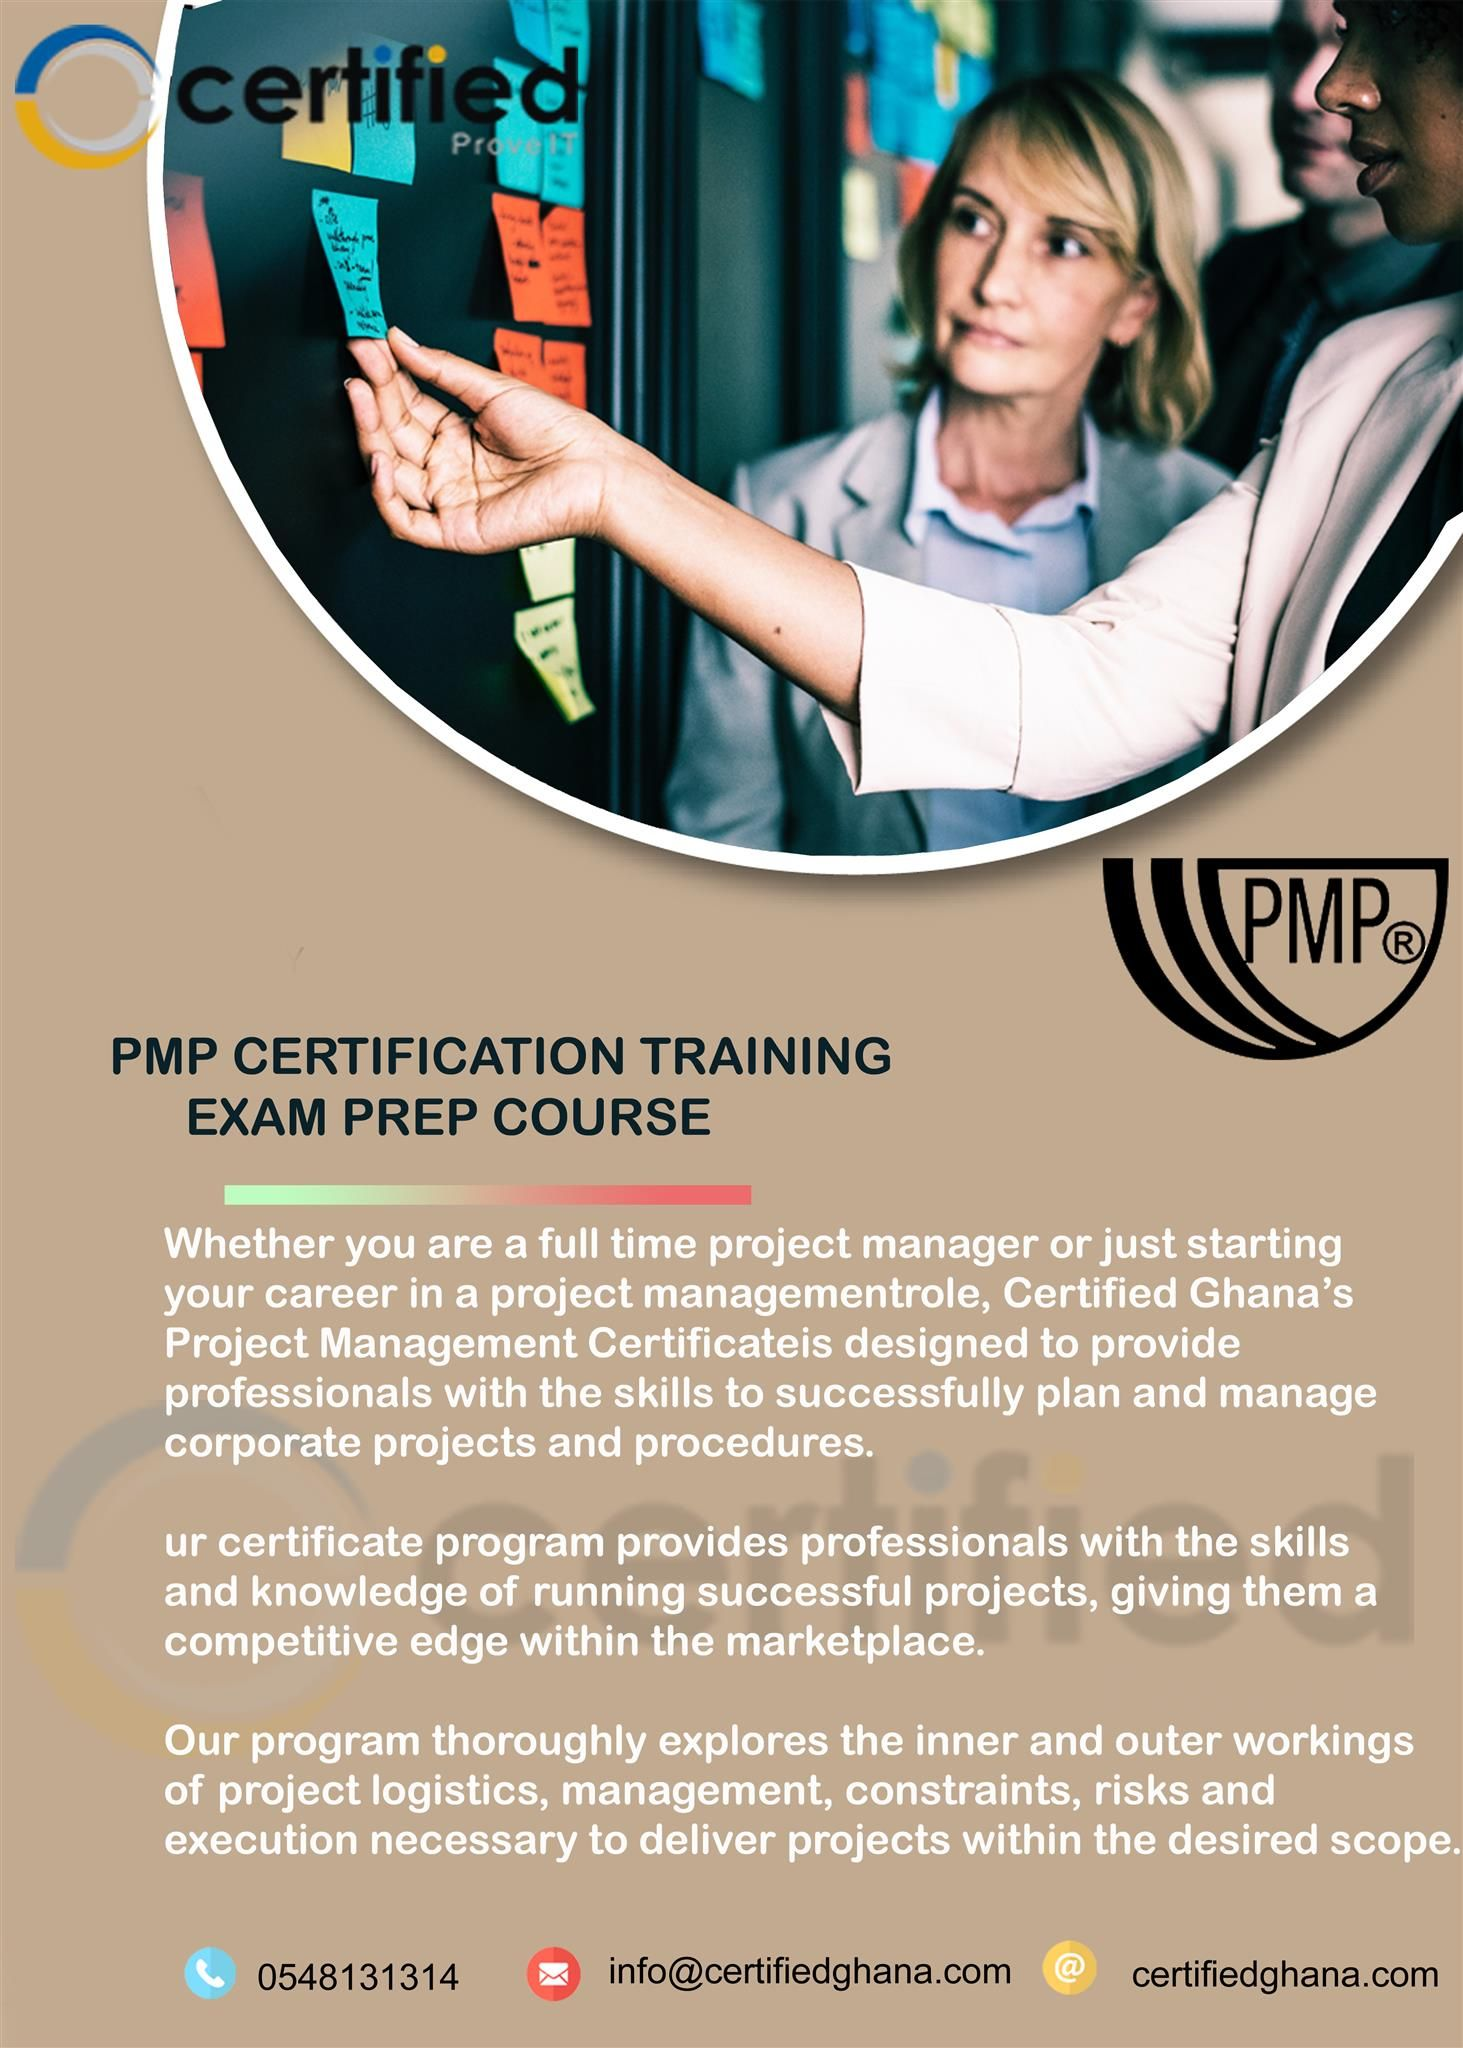 Pmp Certification Training Exam Prep Course In Ghana